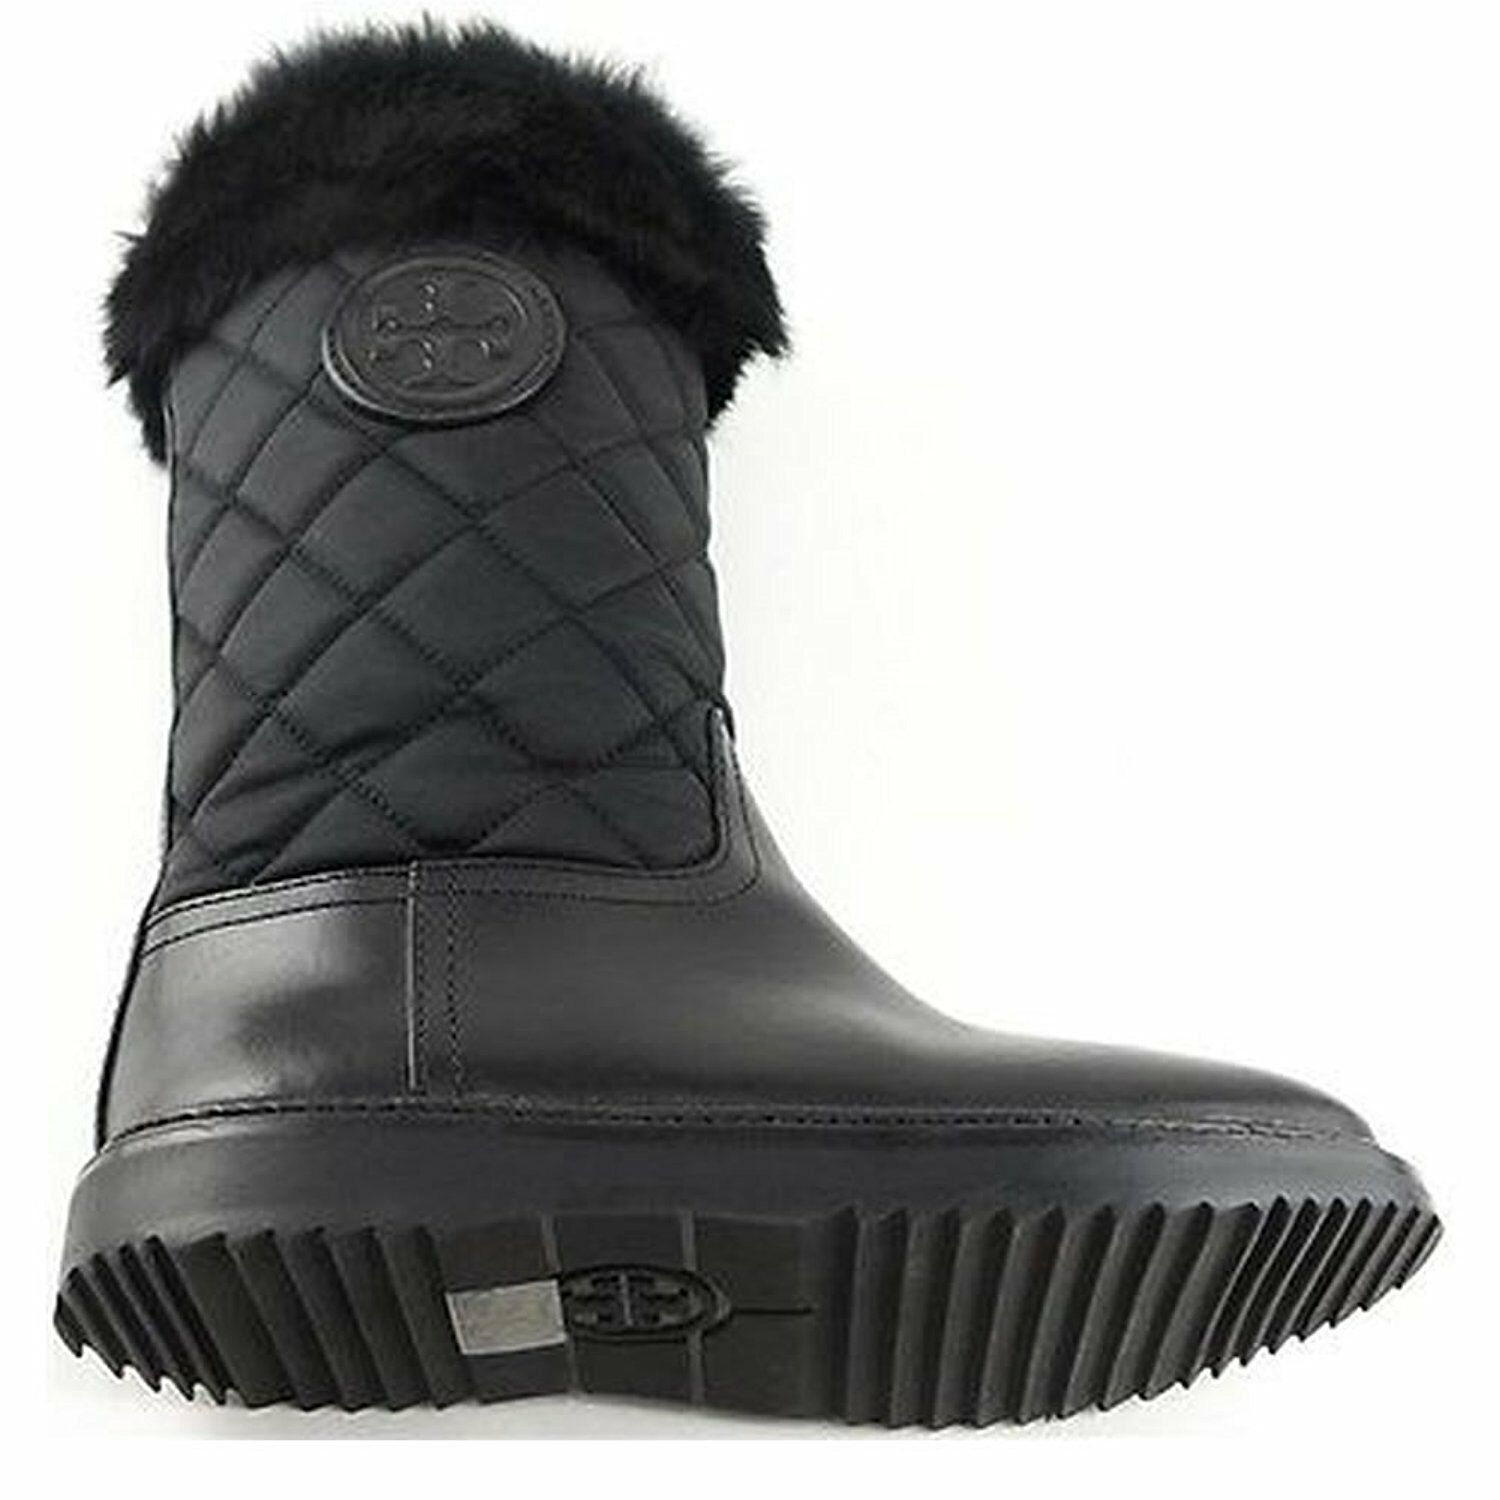 Tory Burch Joey Fur Trim Quilted Winter Boots Women's Size 5